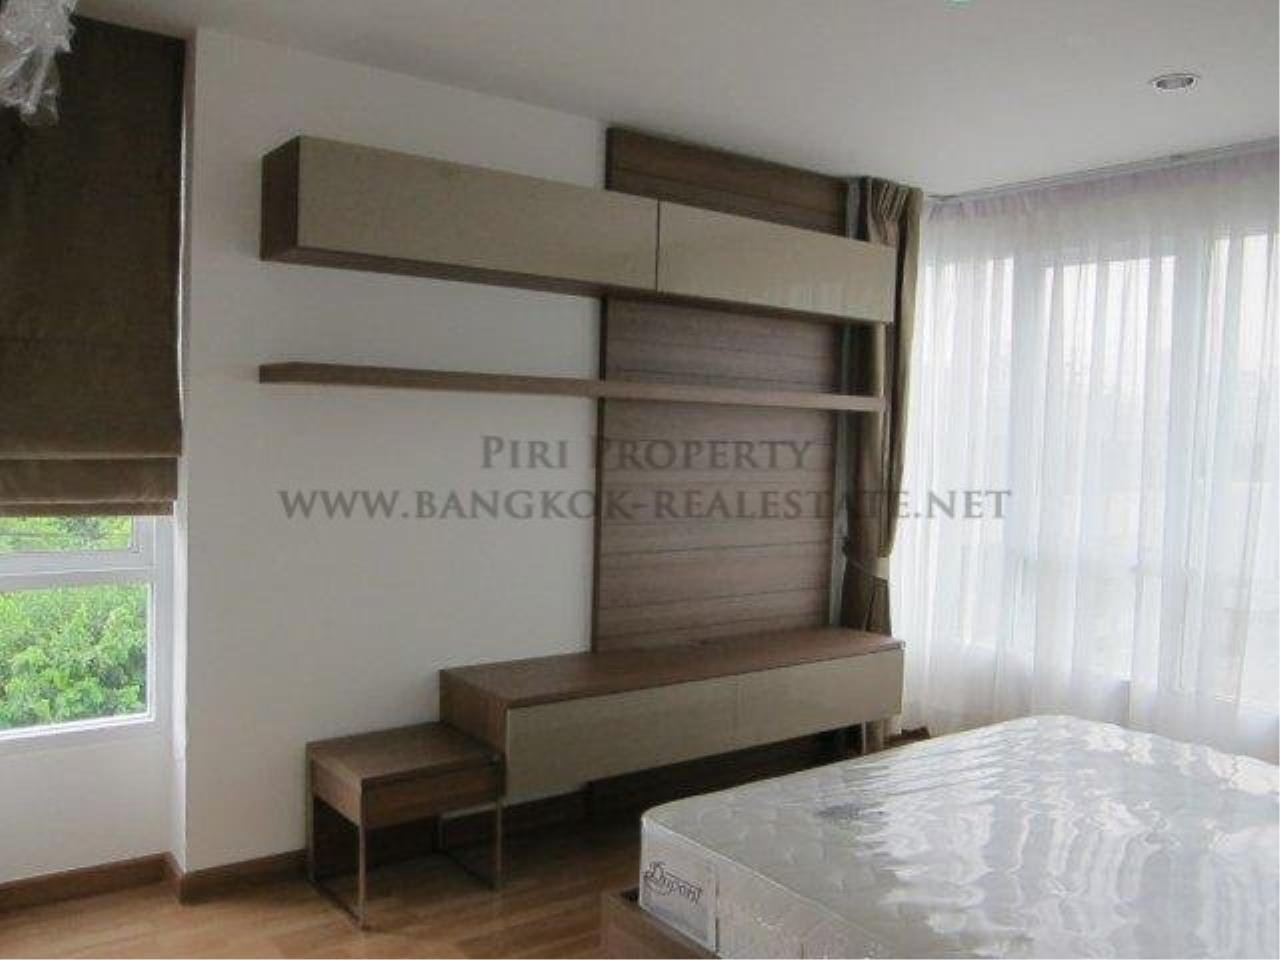 Piri Property Agency's 2 Bedroom Condo in Asoke - Voque 16 for Rent - Free Shuttle to BTS 5